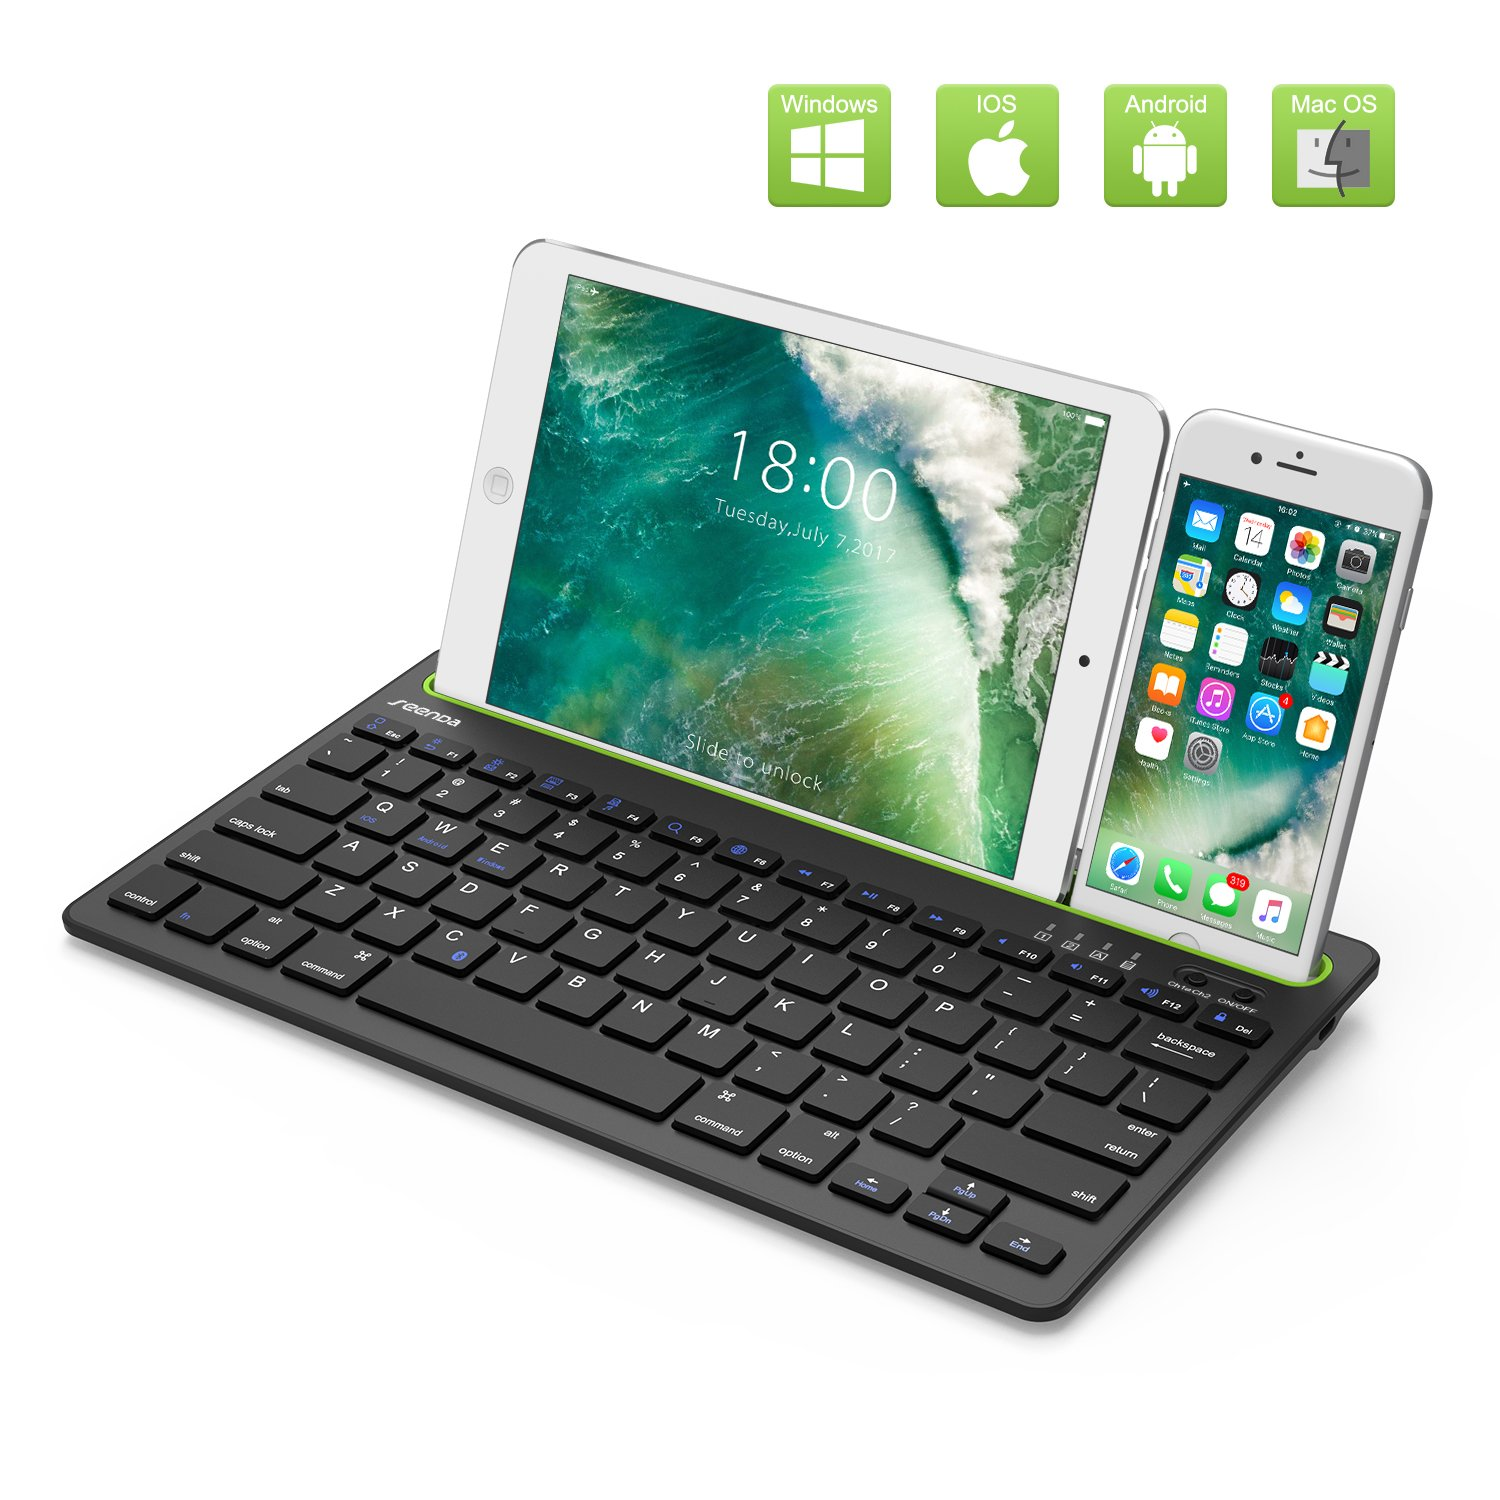 Bluetooth Keyboard for iPad,Seenda Ultra Compact Rechargeable Multi Device Bluetooth Keyboard for Smartphones Tablet PC,Compatible with Windows Android iOS Mac System